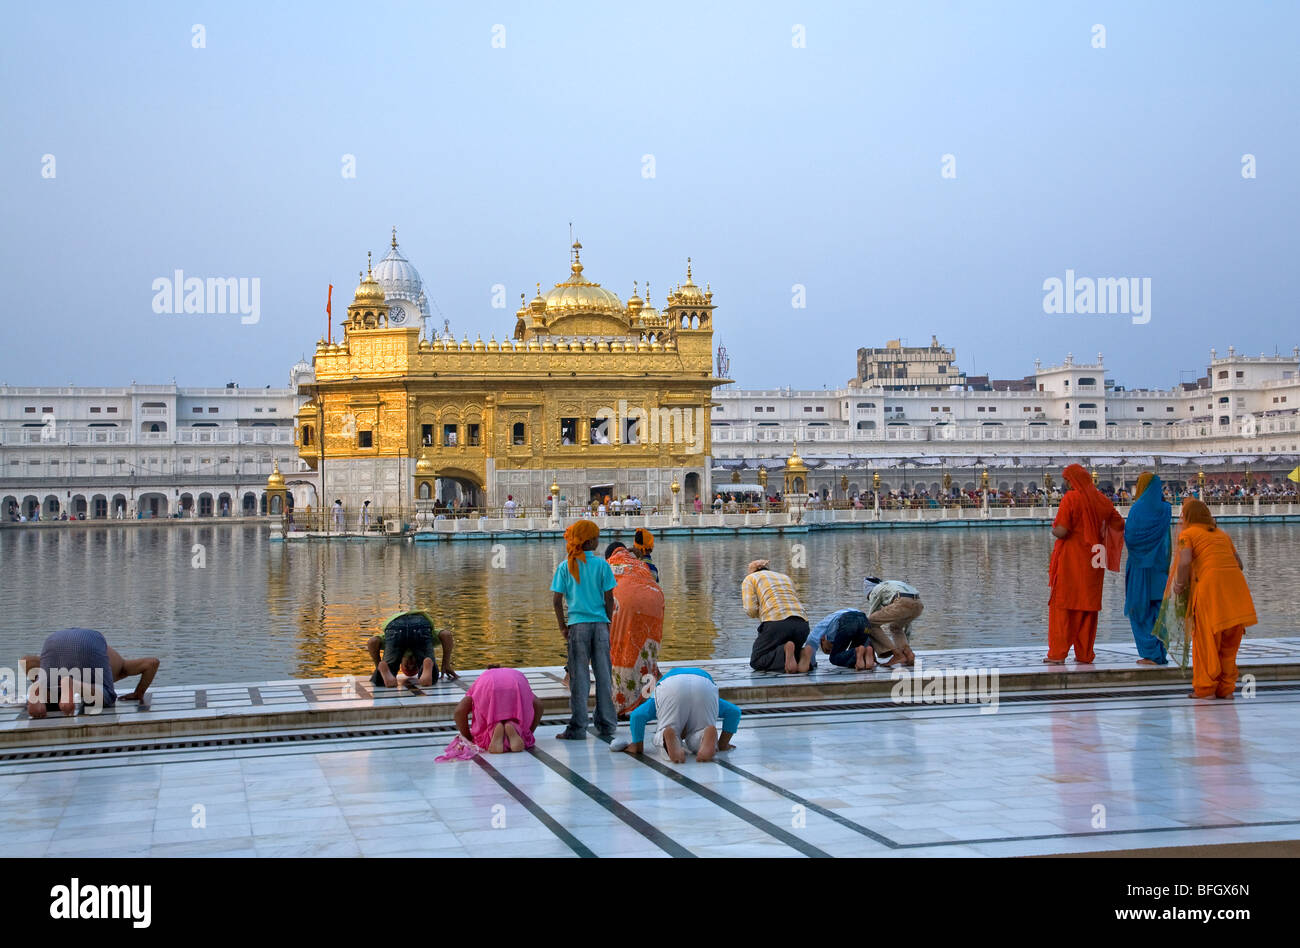 Sikhs Pilgrims Prostrating In Front Of The Golden Temple Amritsar